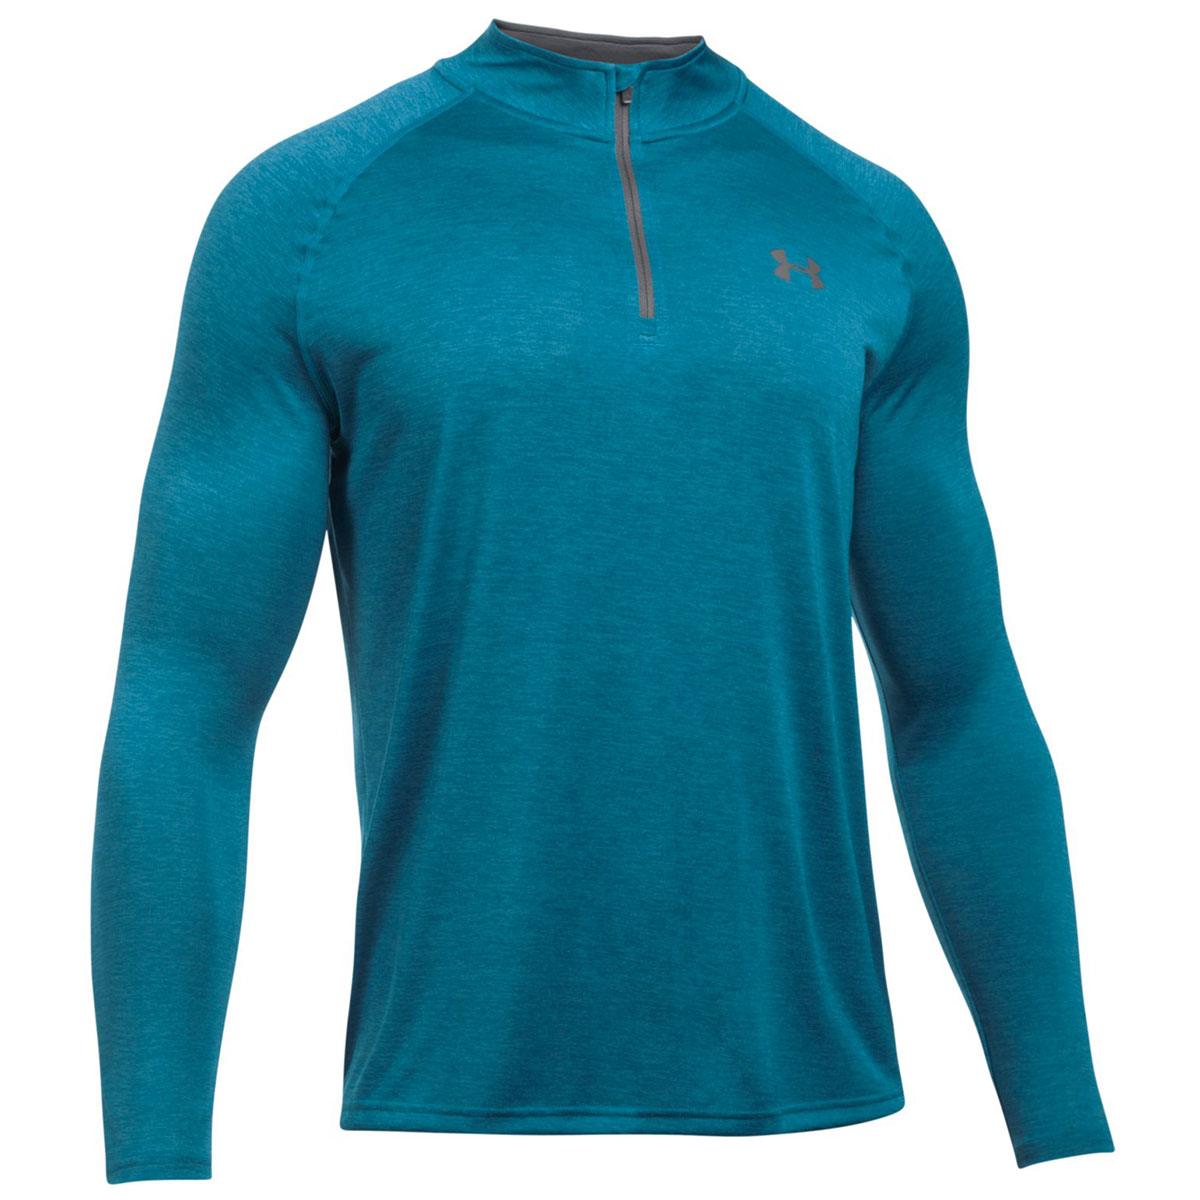 Under-Armour-Mens-UA-Tech-1-4-Zip-Long-Sleeve-Top-Workout-Layer-27-OFF-RRP thumbnail 12